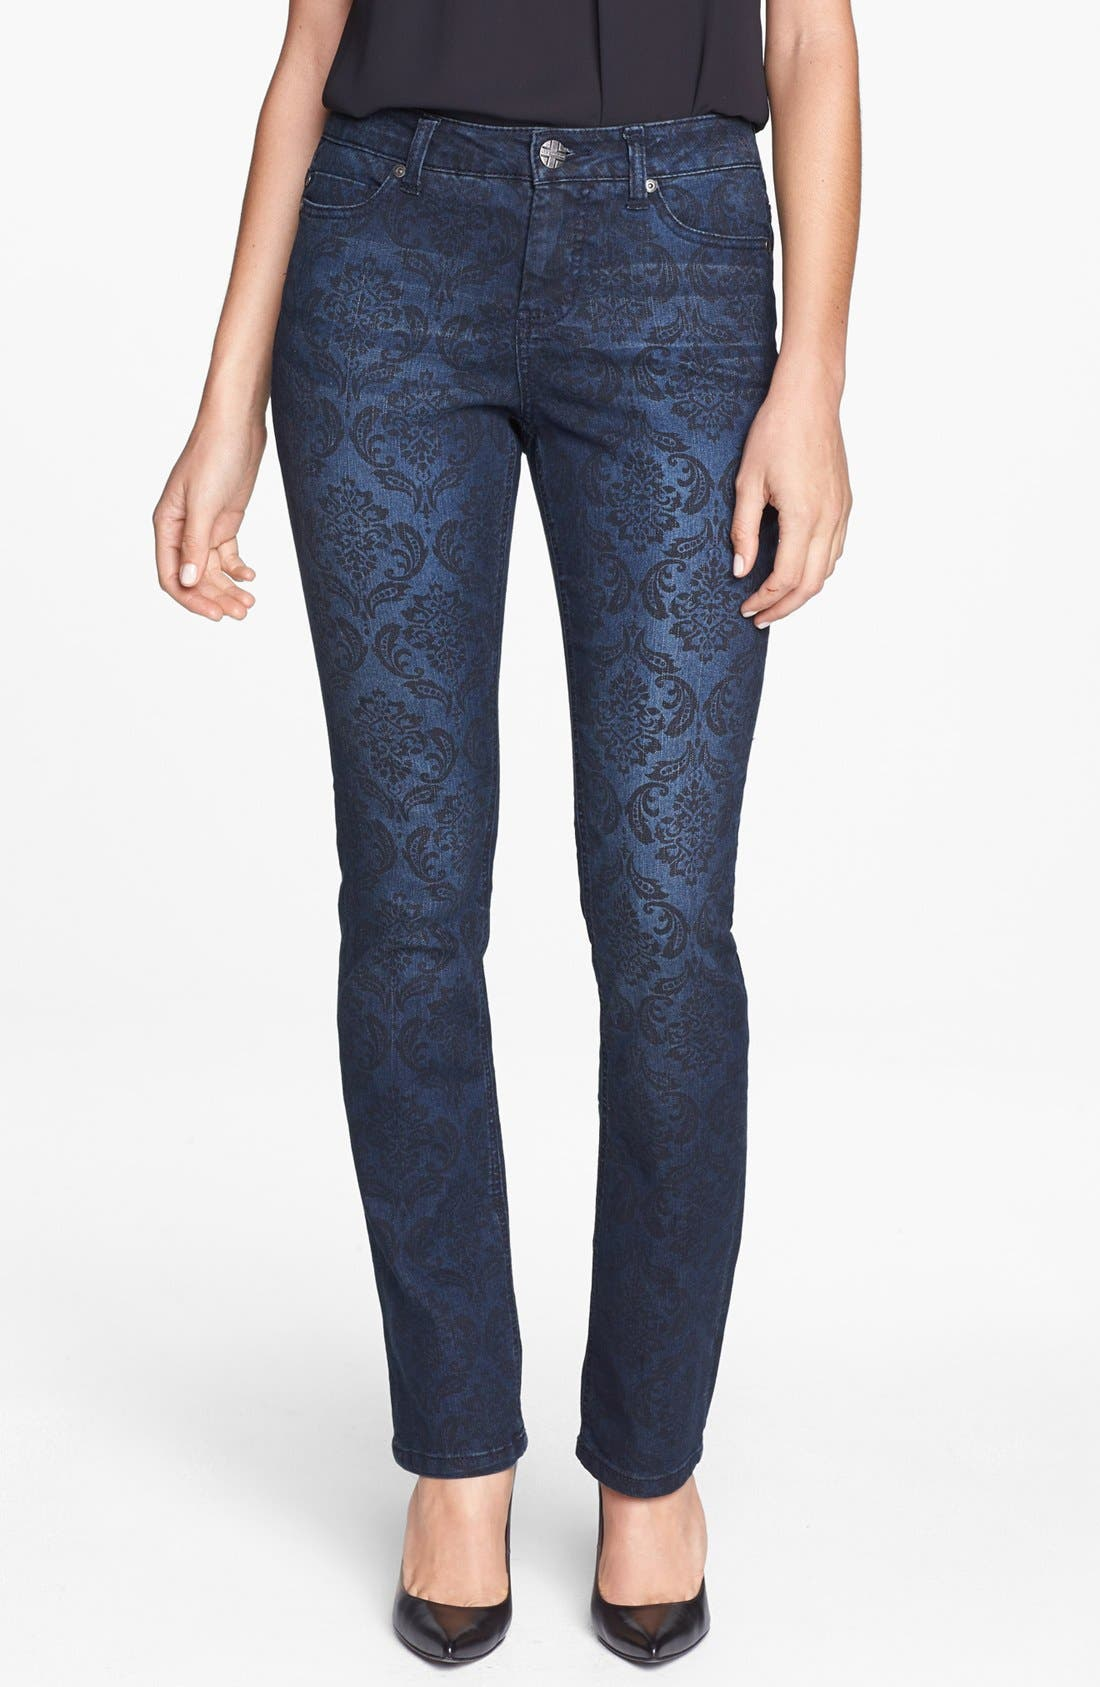 Alternate Image 1 Selected - Liverpool Jeans Company 'Sadie' Print Straight Leg Jeans